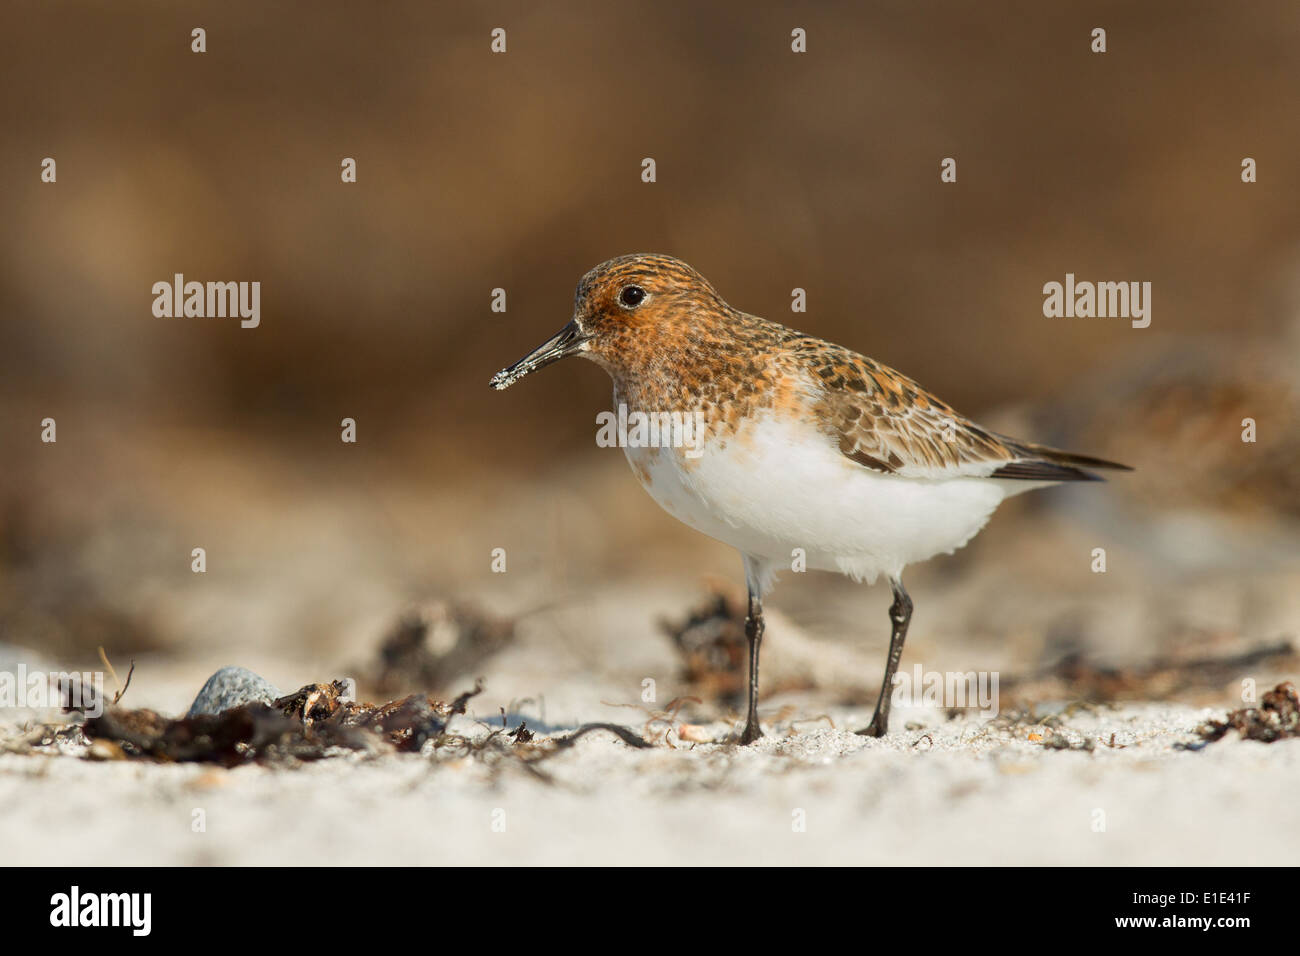 Sanderling Calidris alba in summer plumage photographed at Balranald, North Uist, Outer Hebrides, Scotland in May. - Stock Image